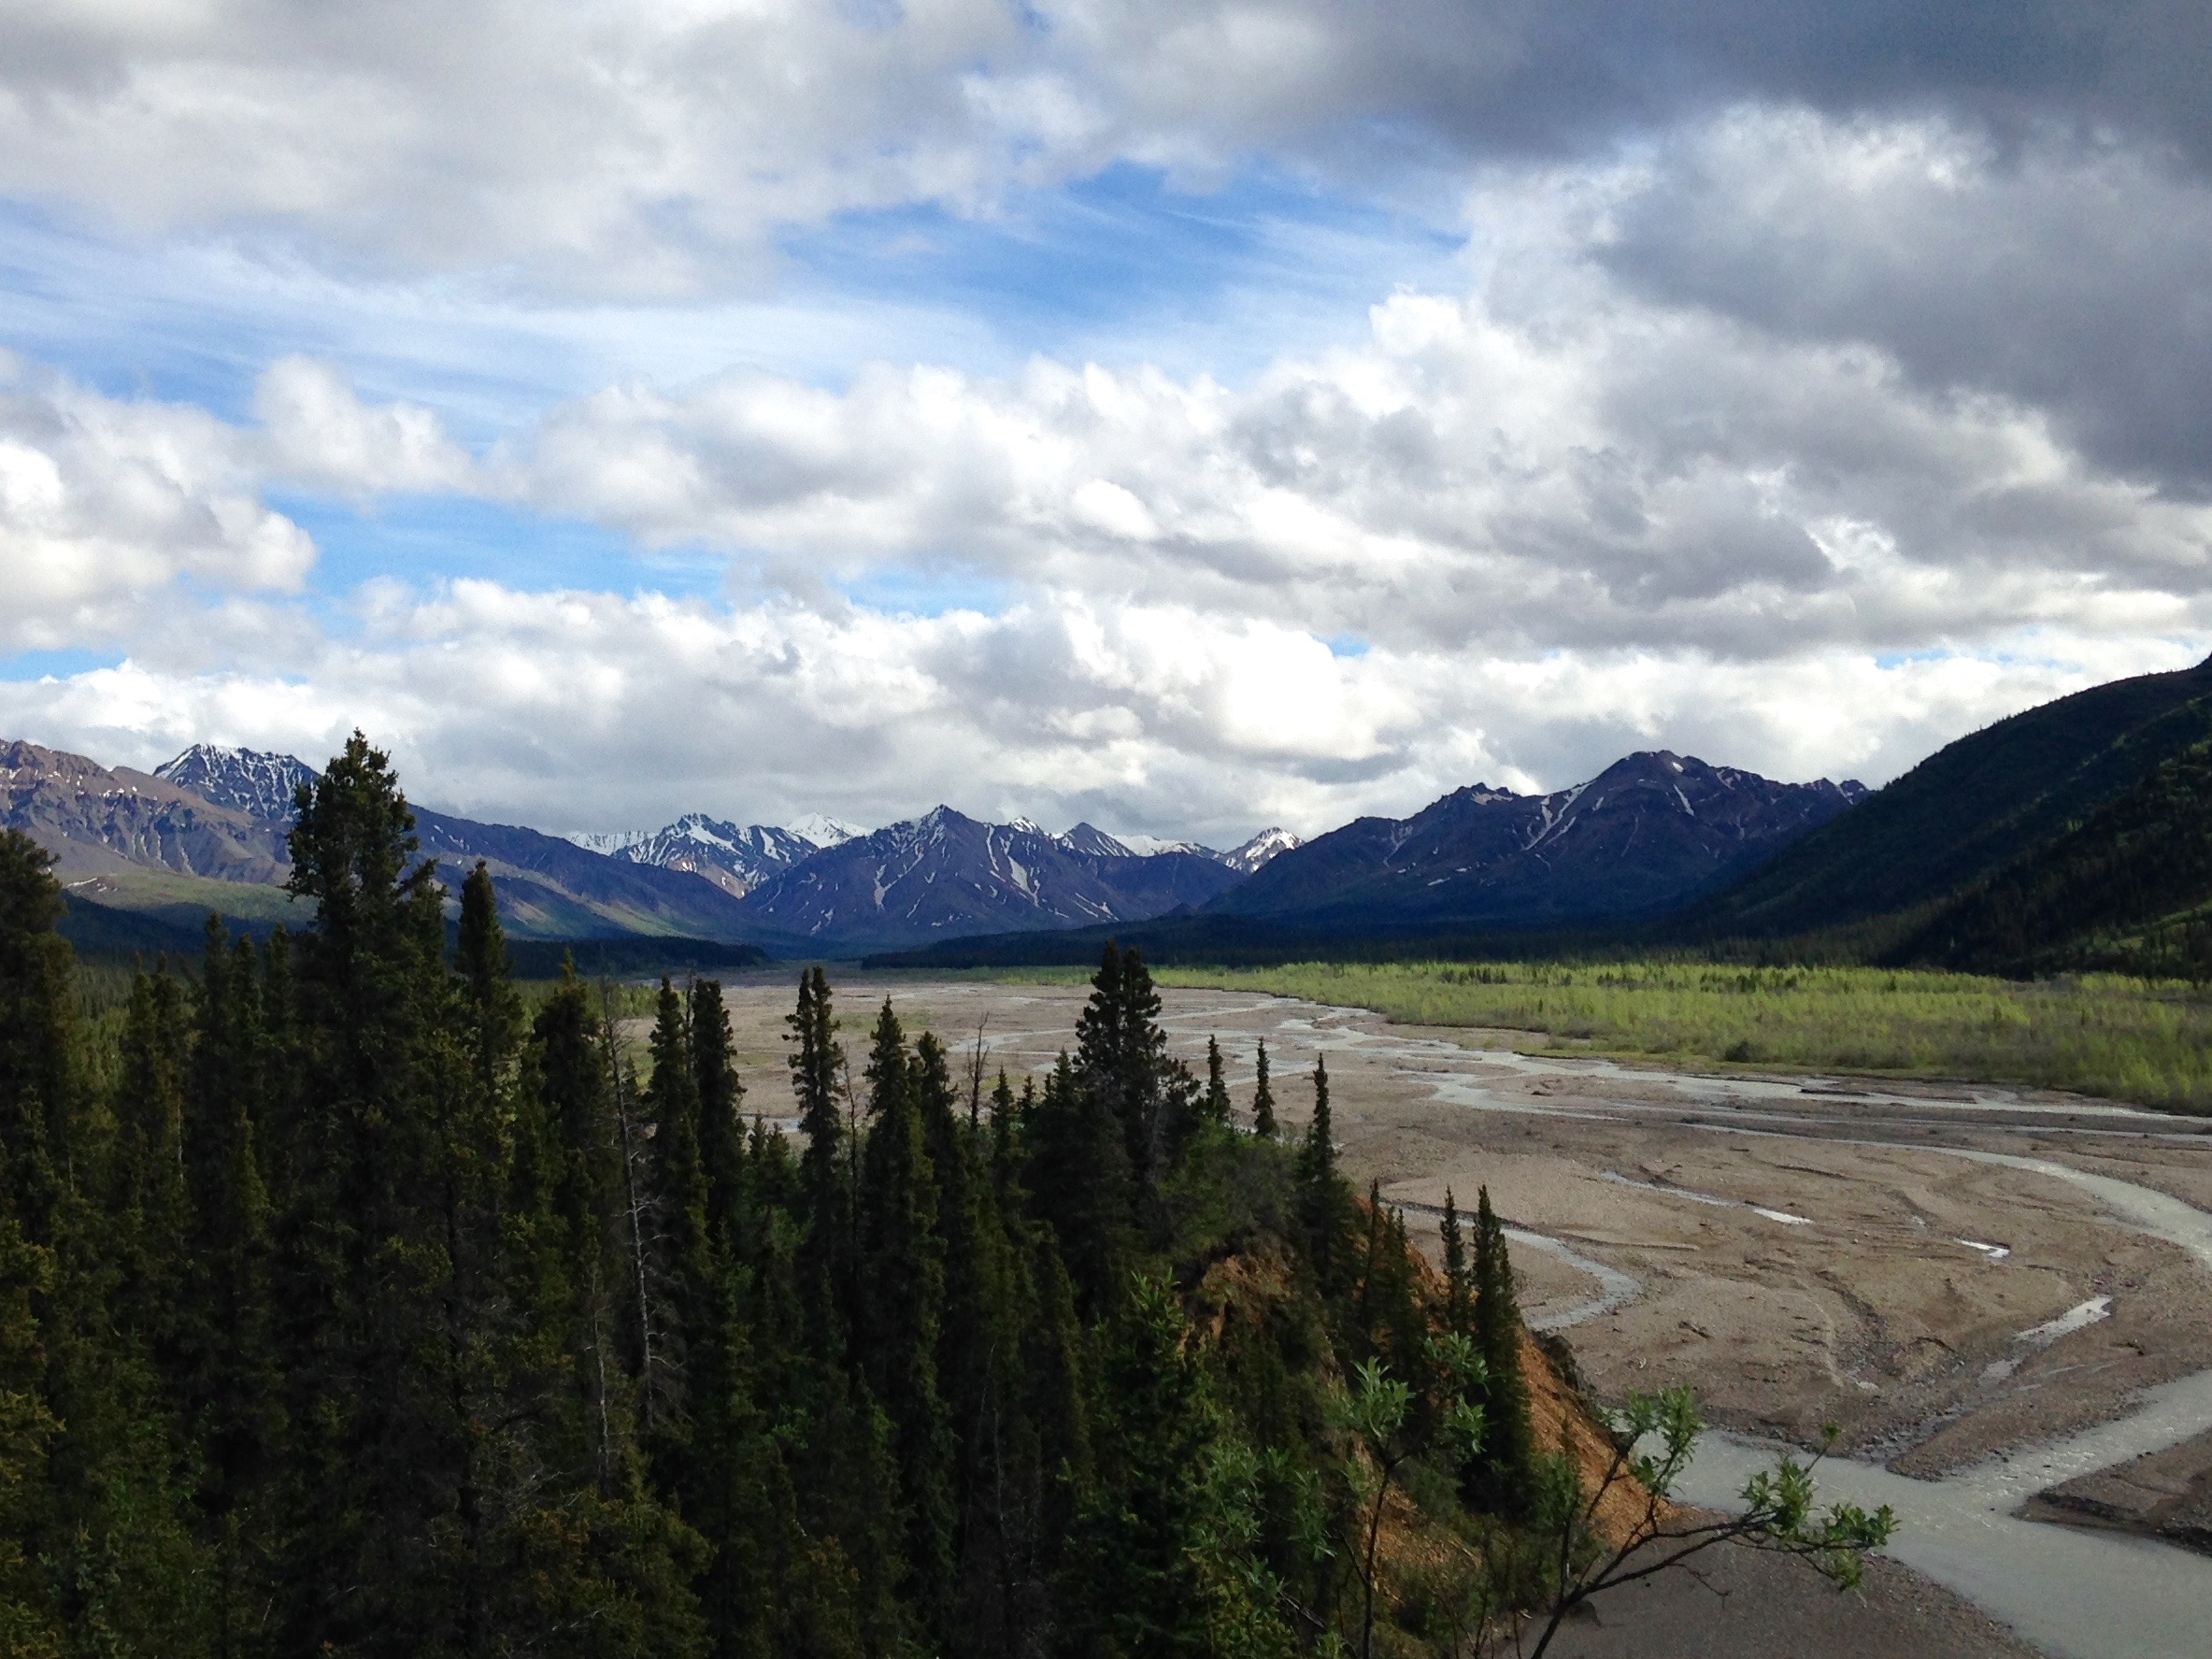 View from near the Teklanika field campus of the Teklanika river and alaska range.